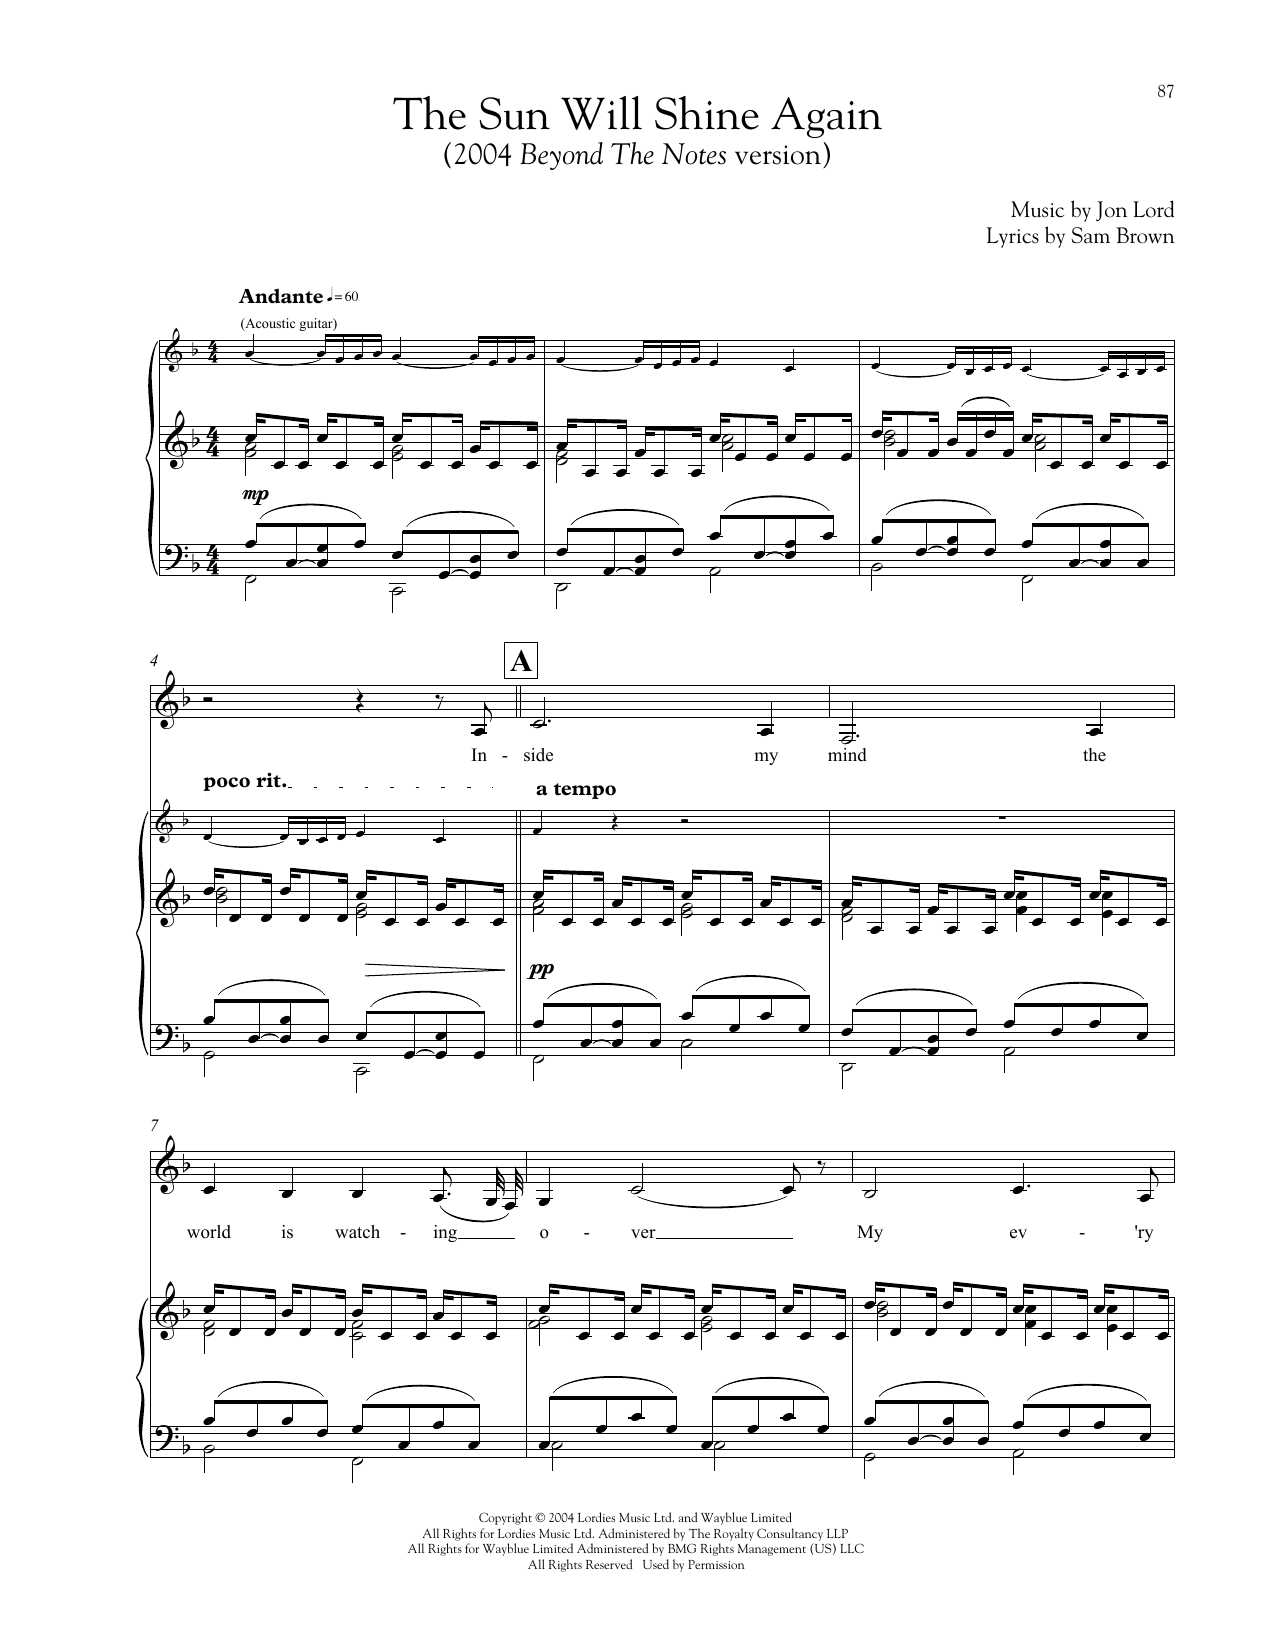 The Sun Will Shine Again Sheet Music